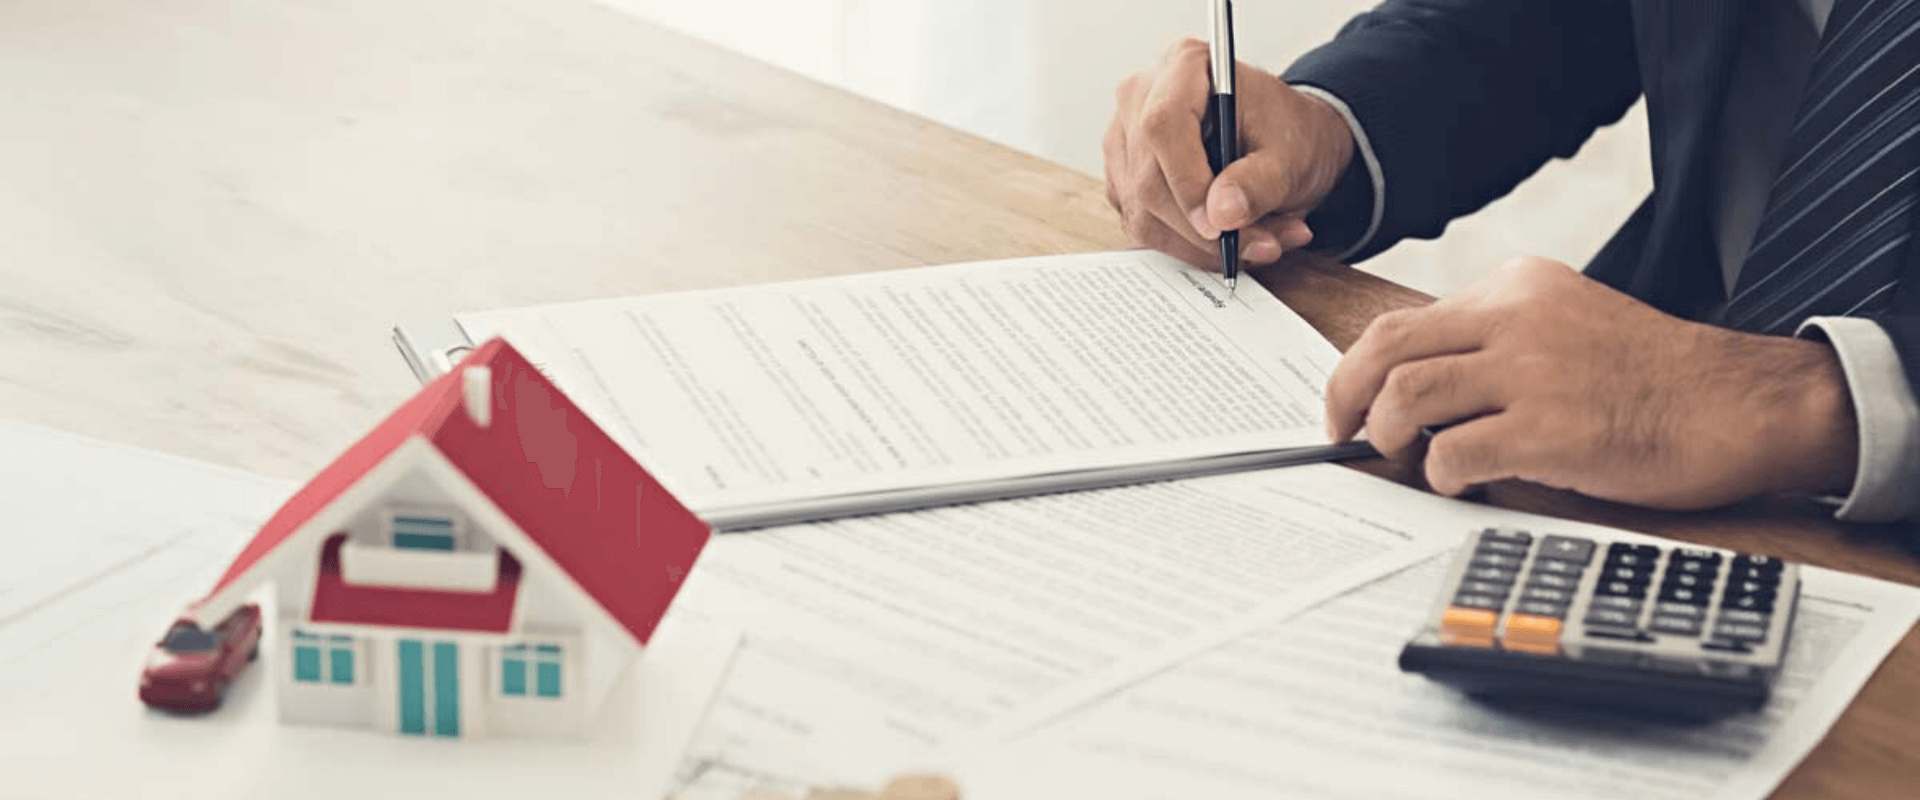 Signing Documents - FastExpert